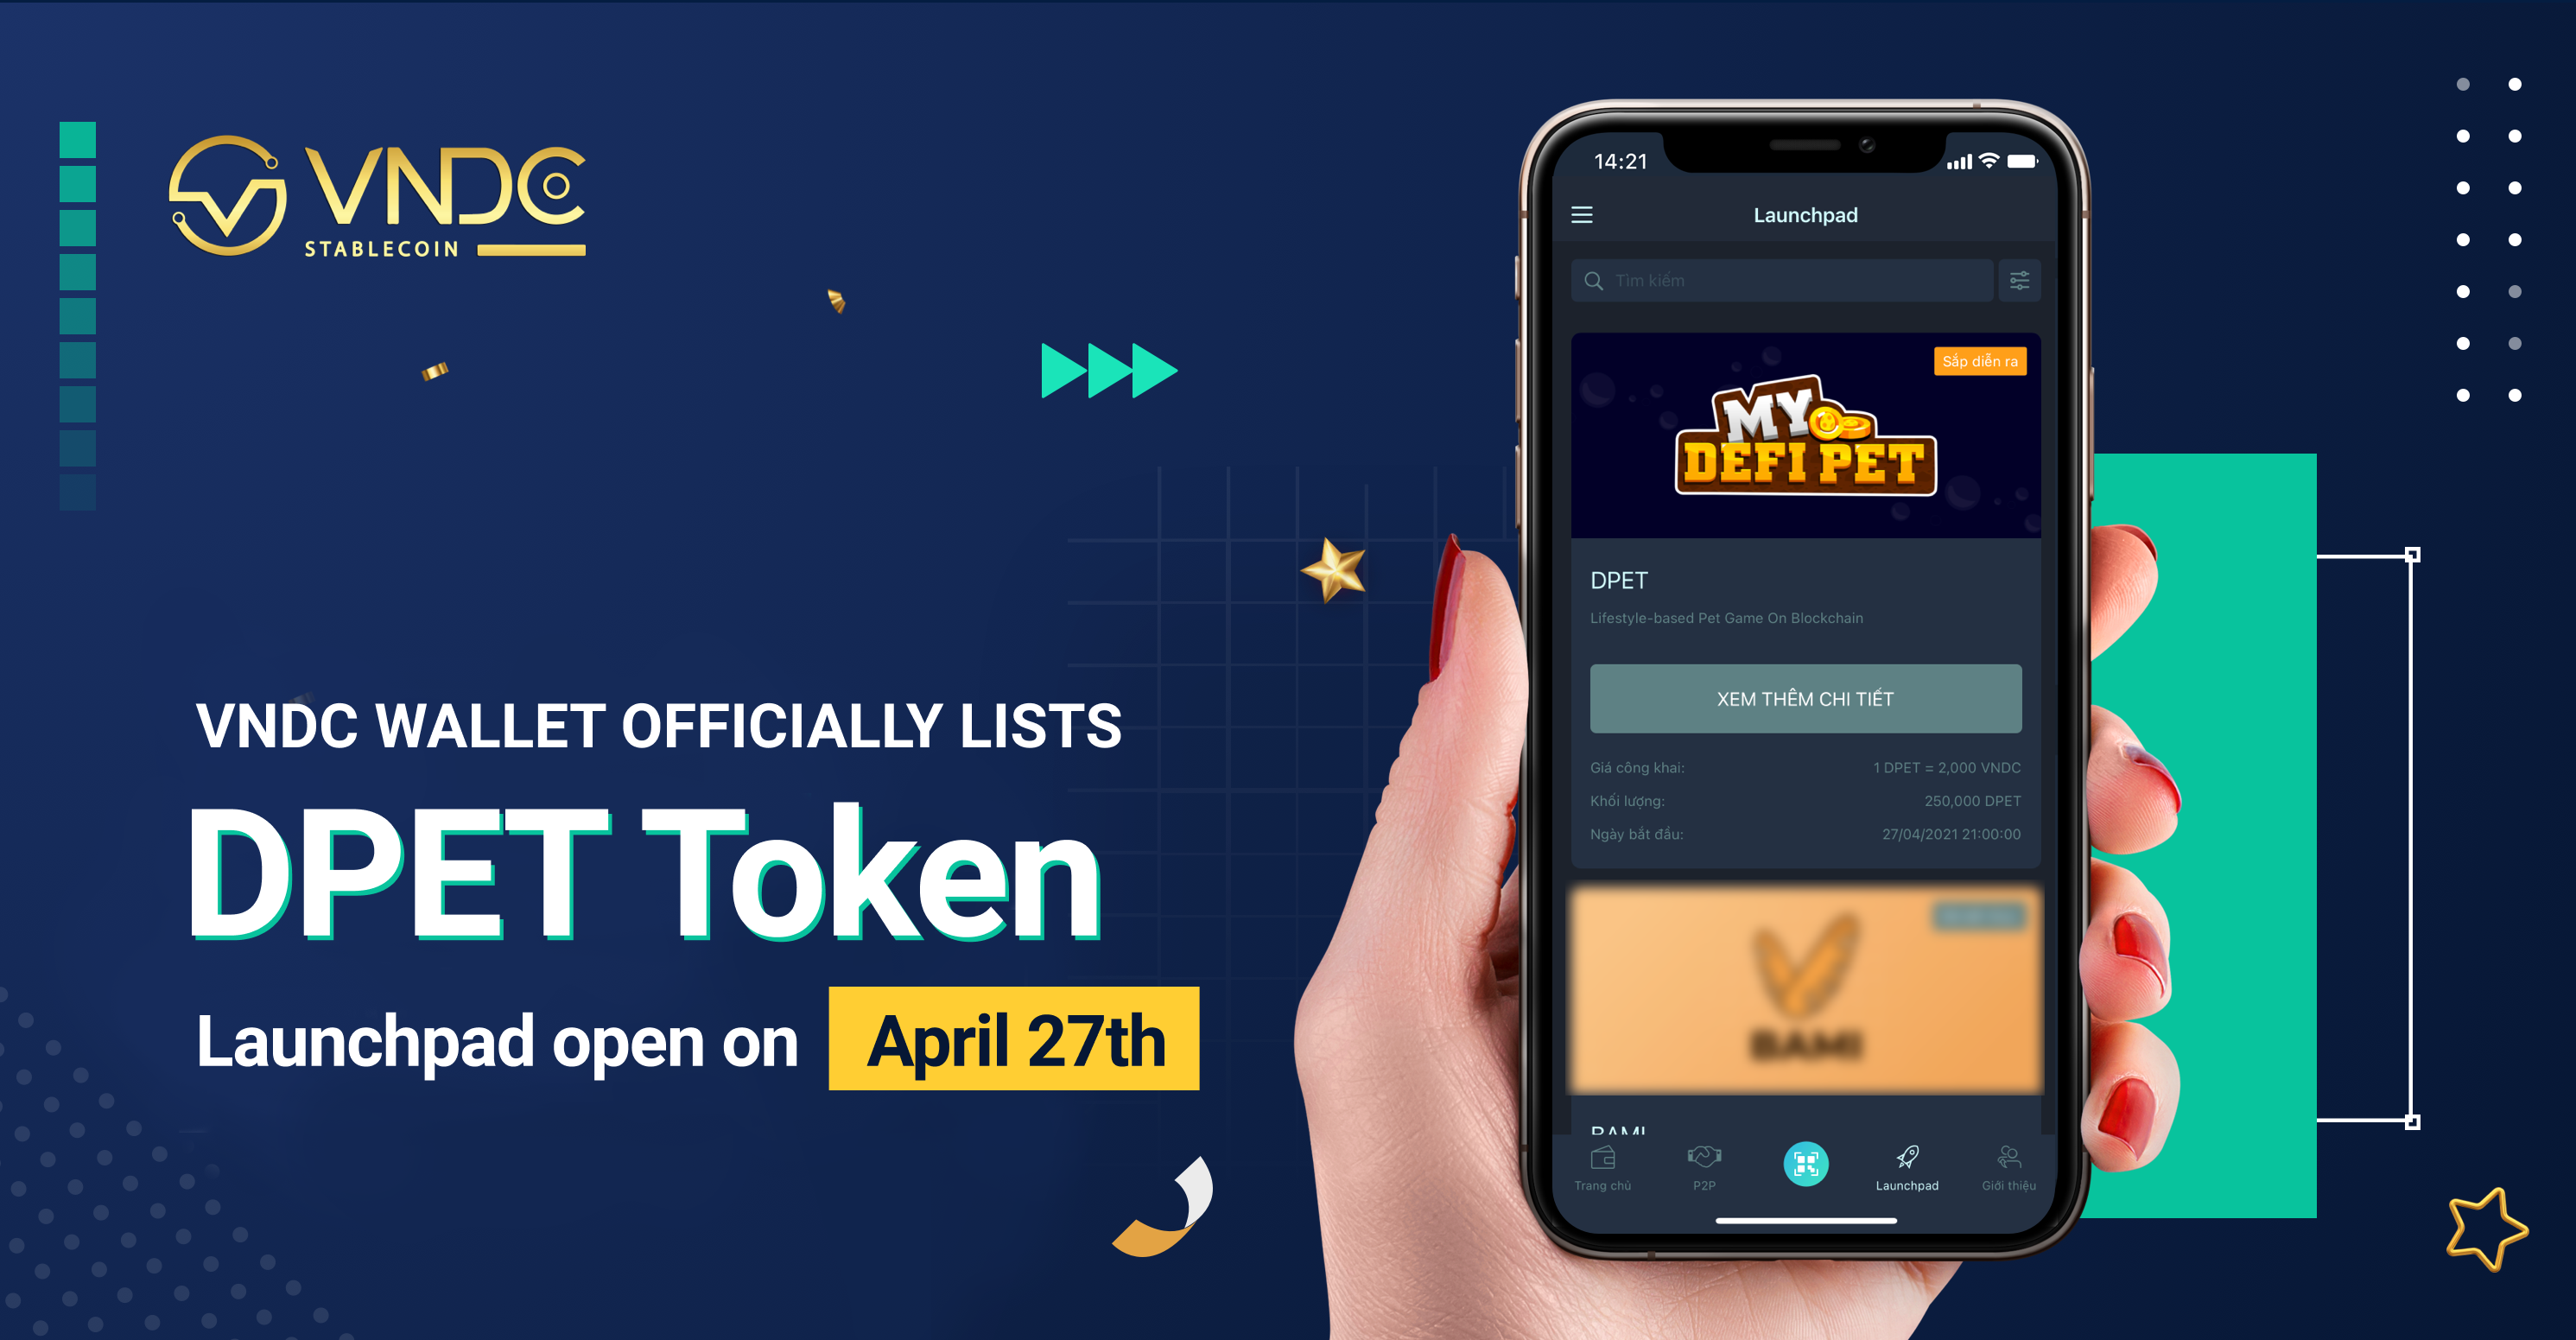 VNDC Wallet officially lists DPET Token, Launchpad open on April 27th